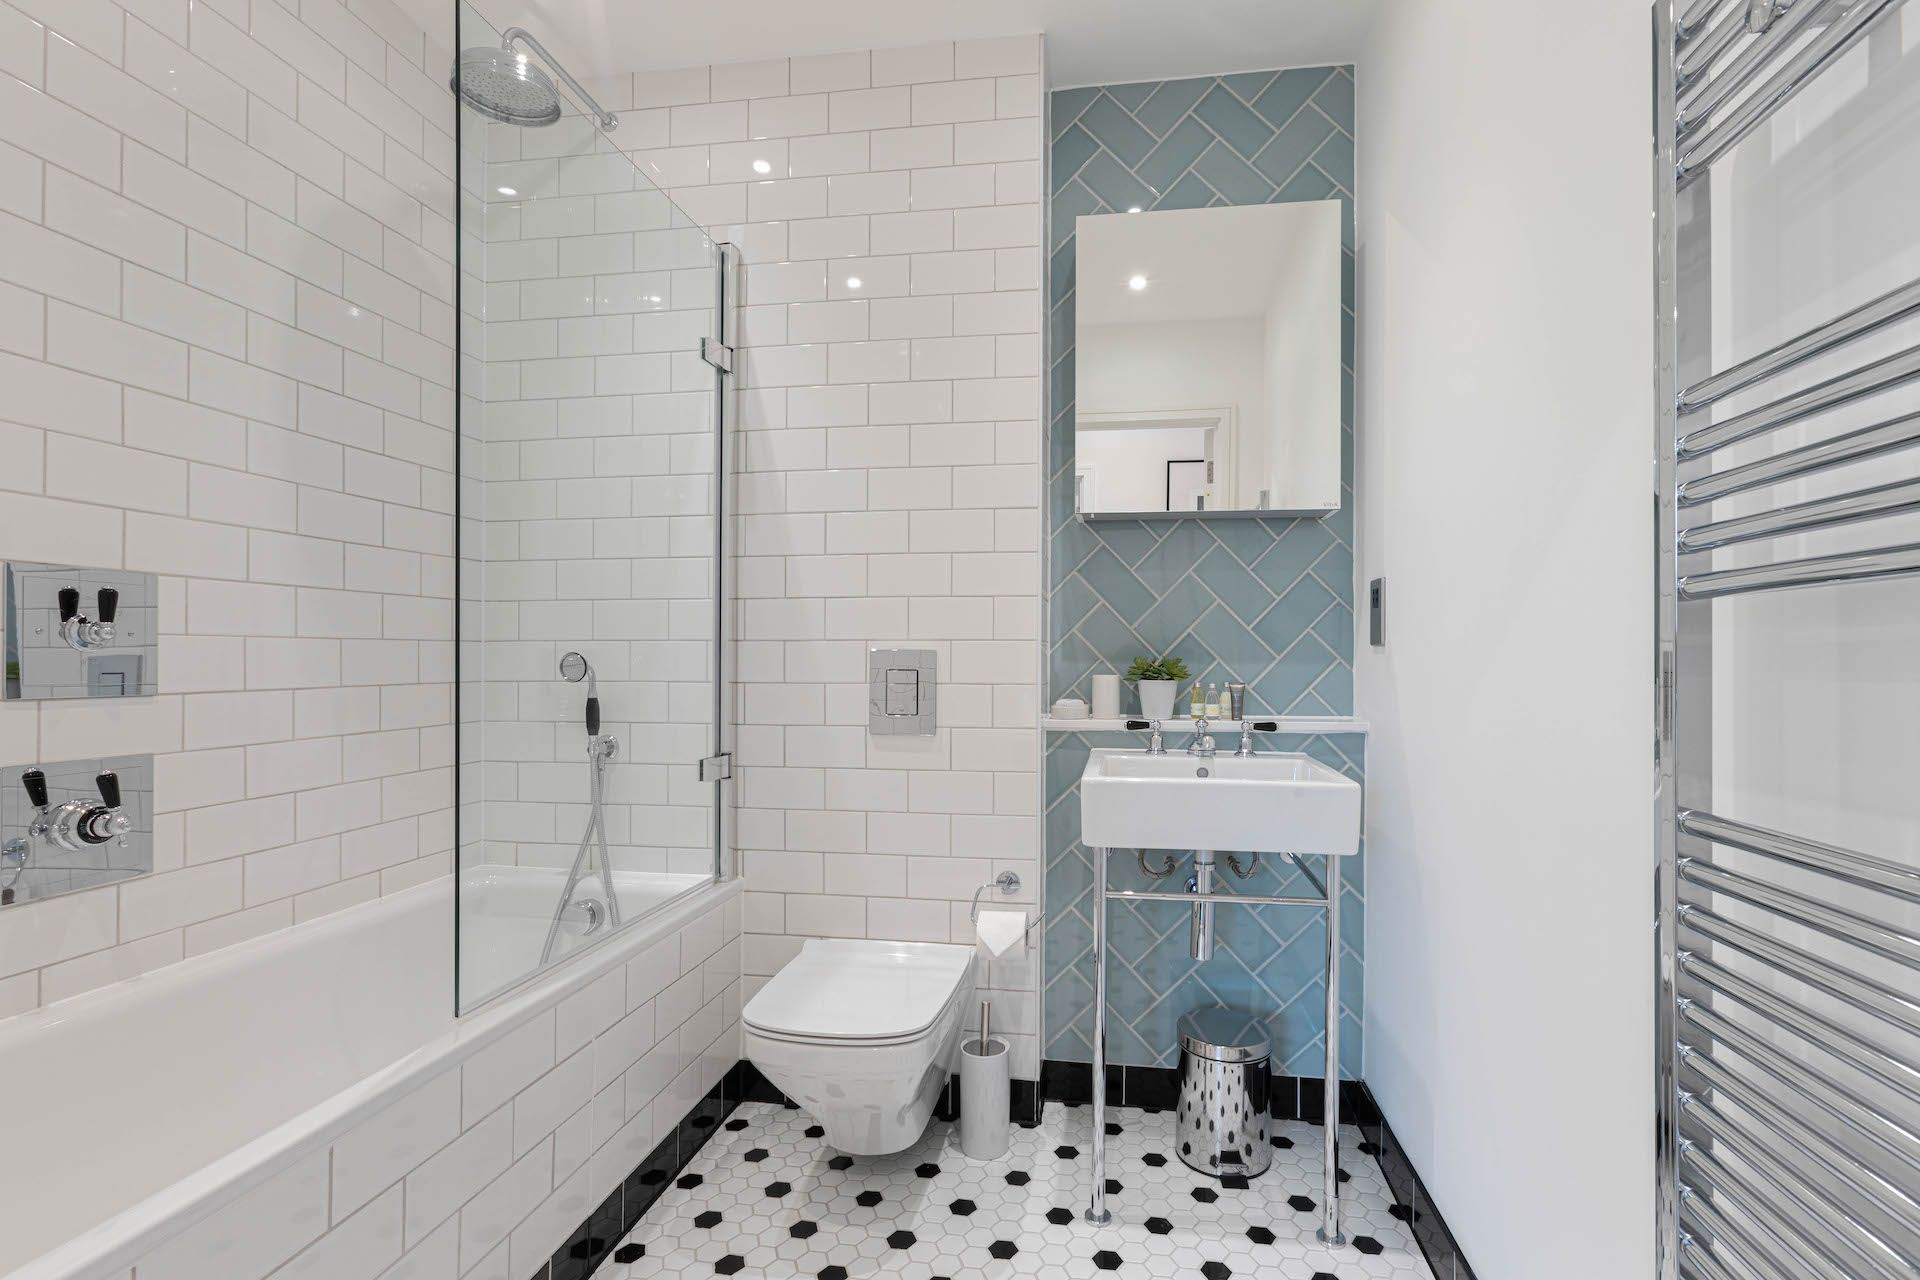 3 Bedroom apartment to rent in London SHO-CA-0028